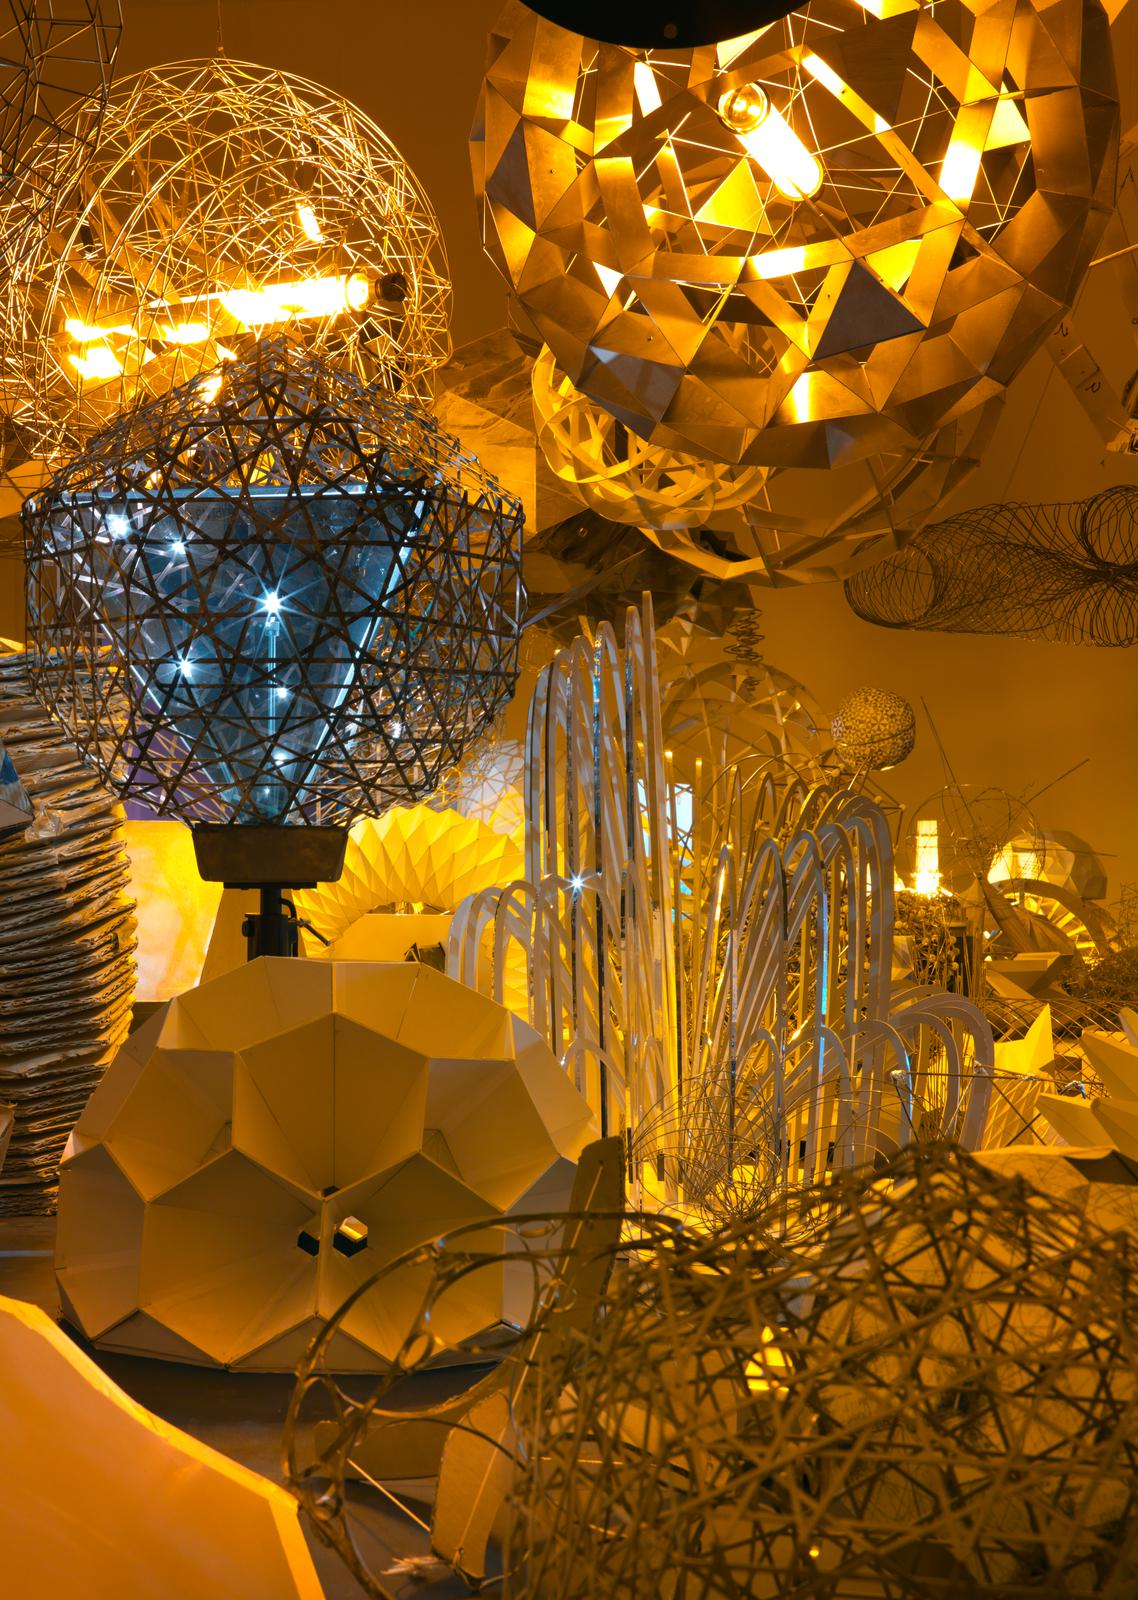 Model Room Artwork Studio Olafur Eliasson